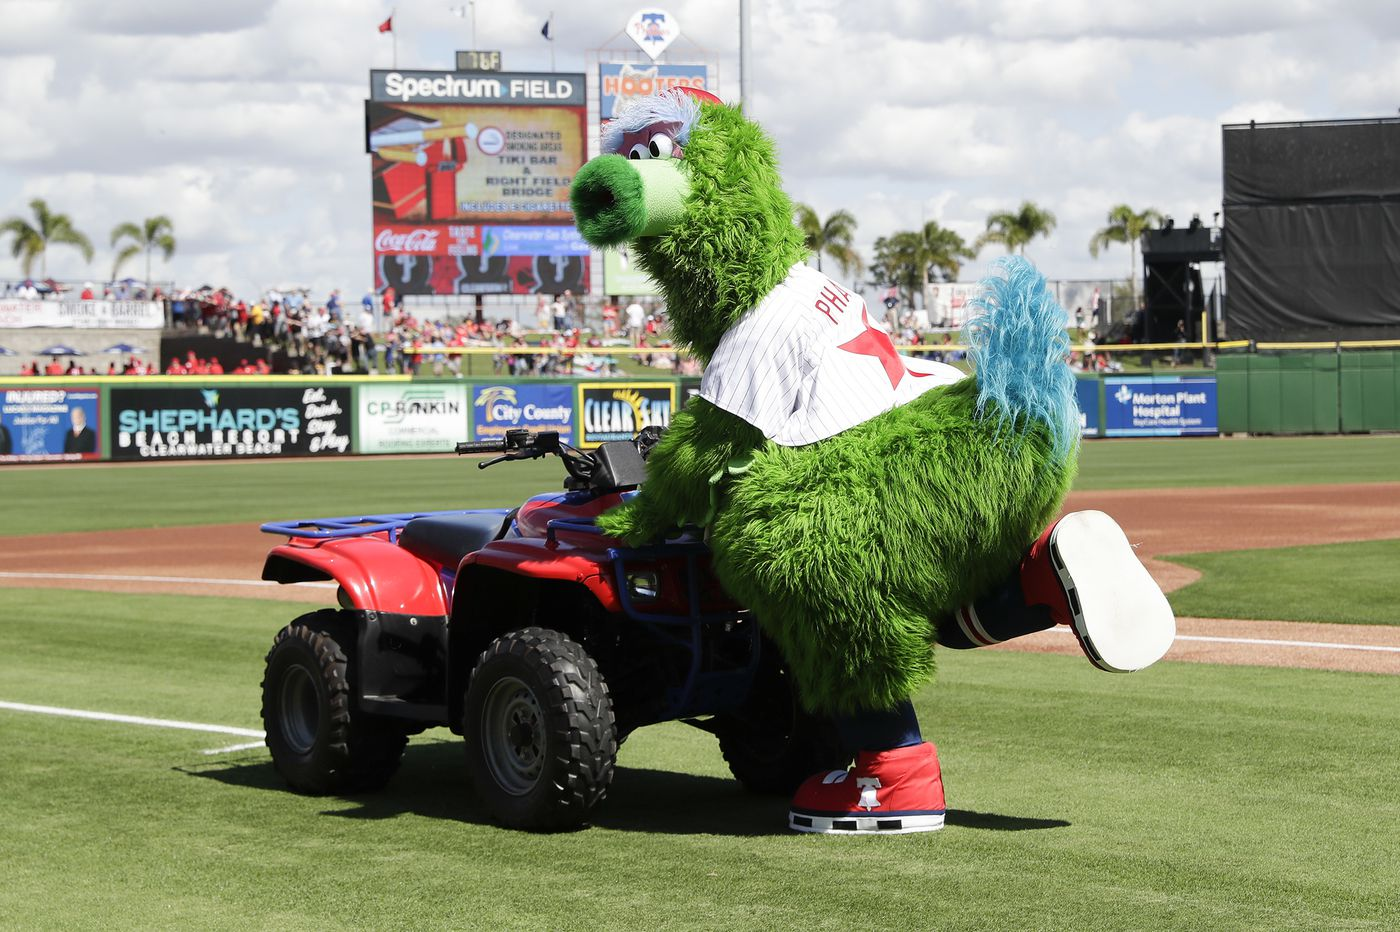 Phillie Phanatic debuts his new look: Wings, a tail, and a bigger backside